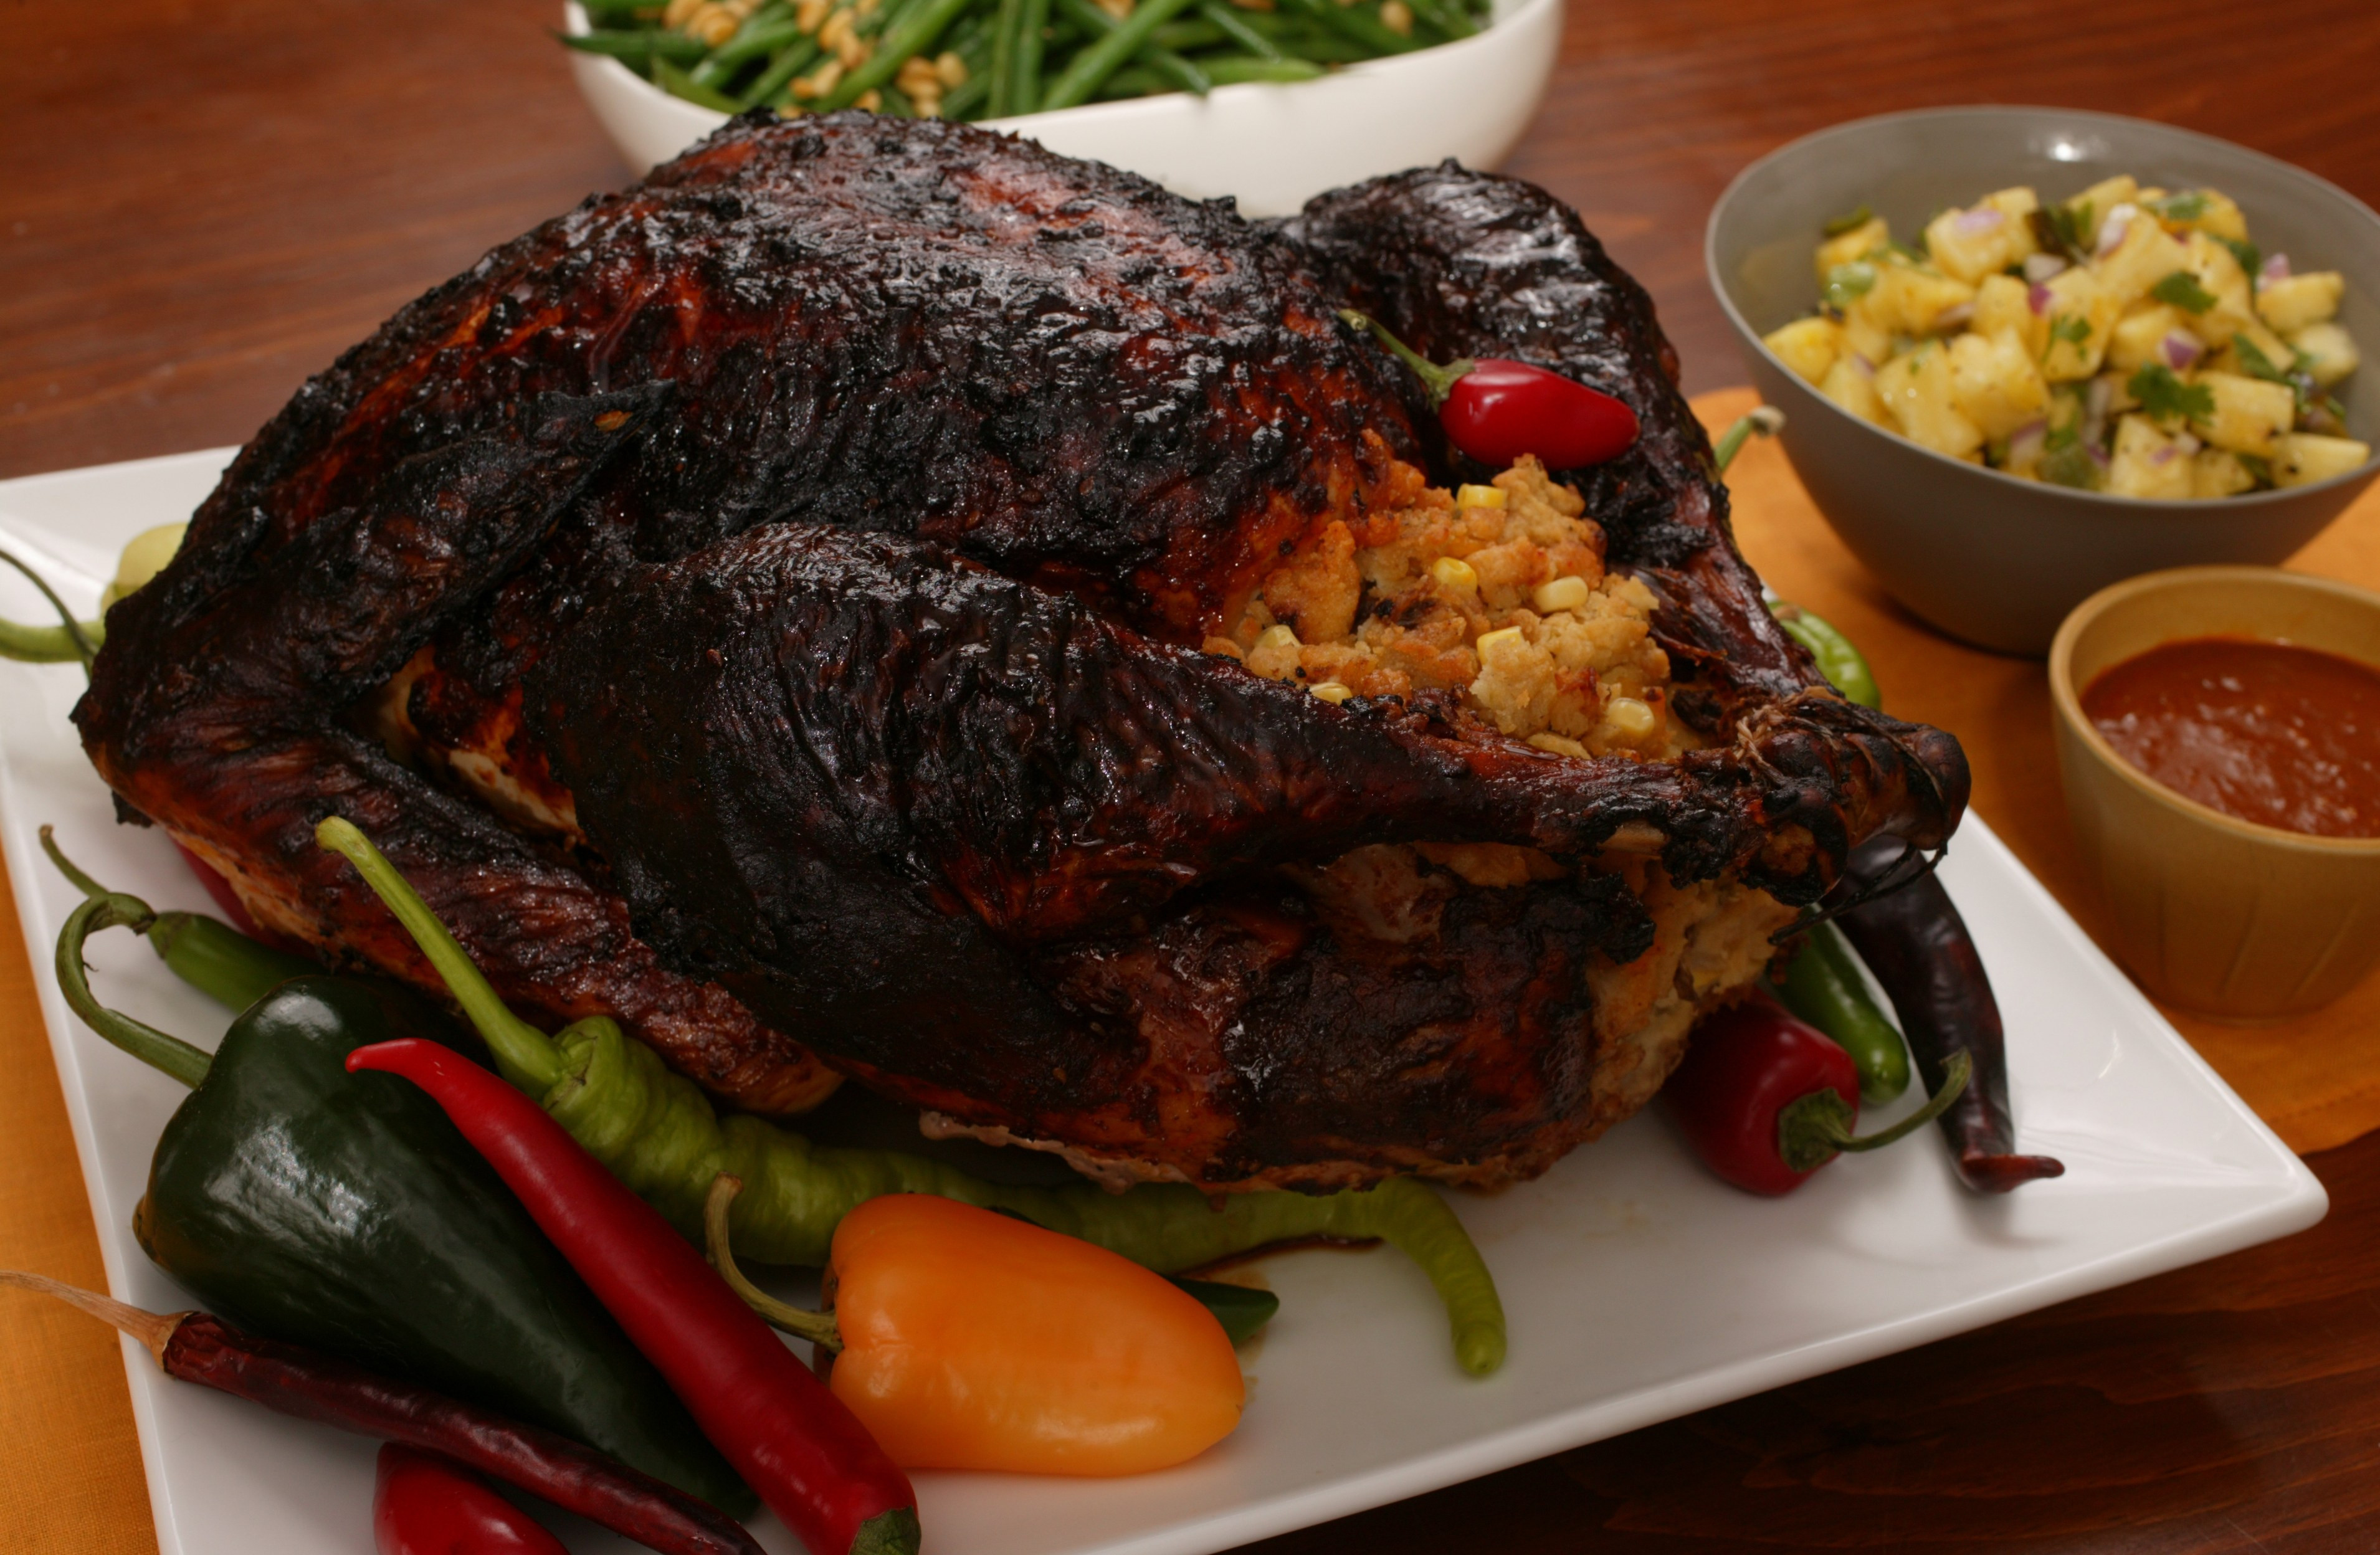 Roasted Turkey Recipes Thanksgiving  Mole Roasted Turkey with Masa Stuffing and Chile Gravy